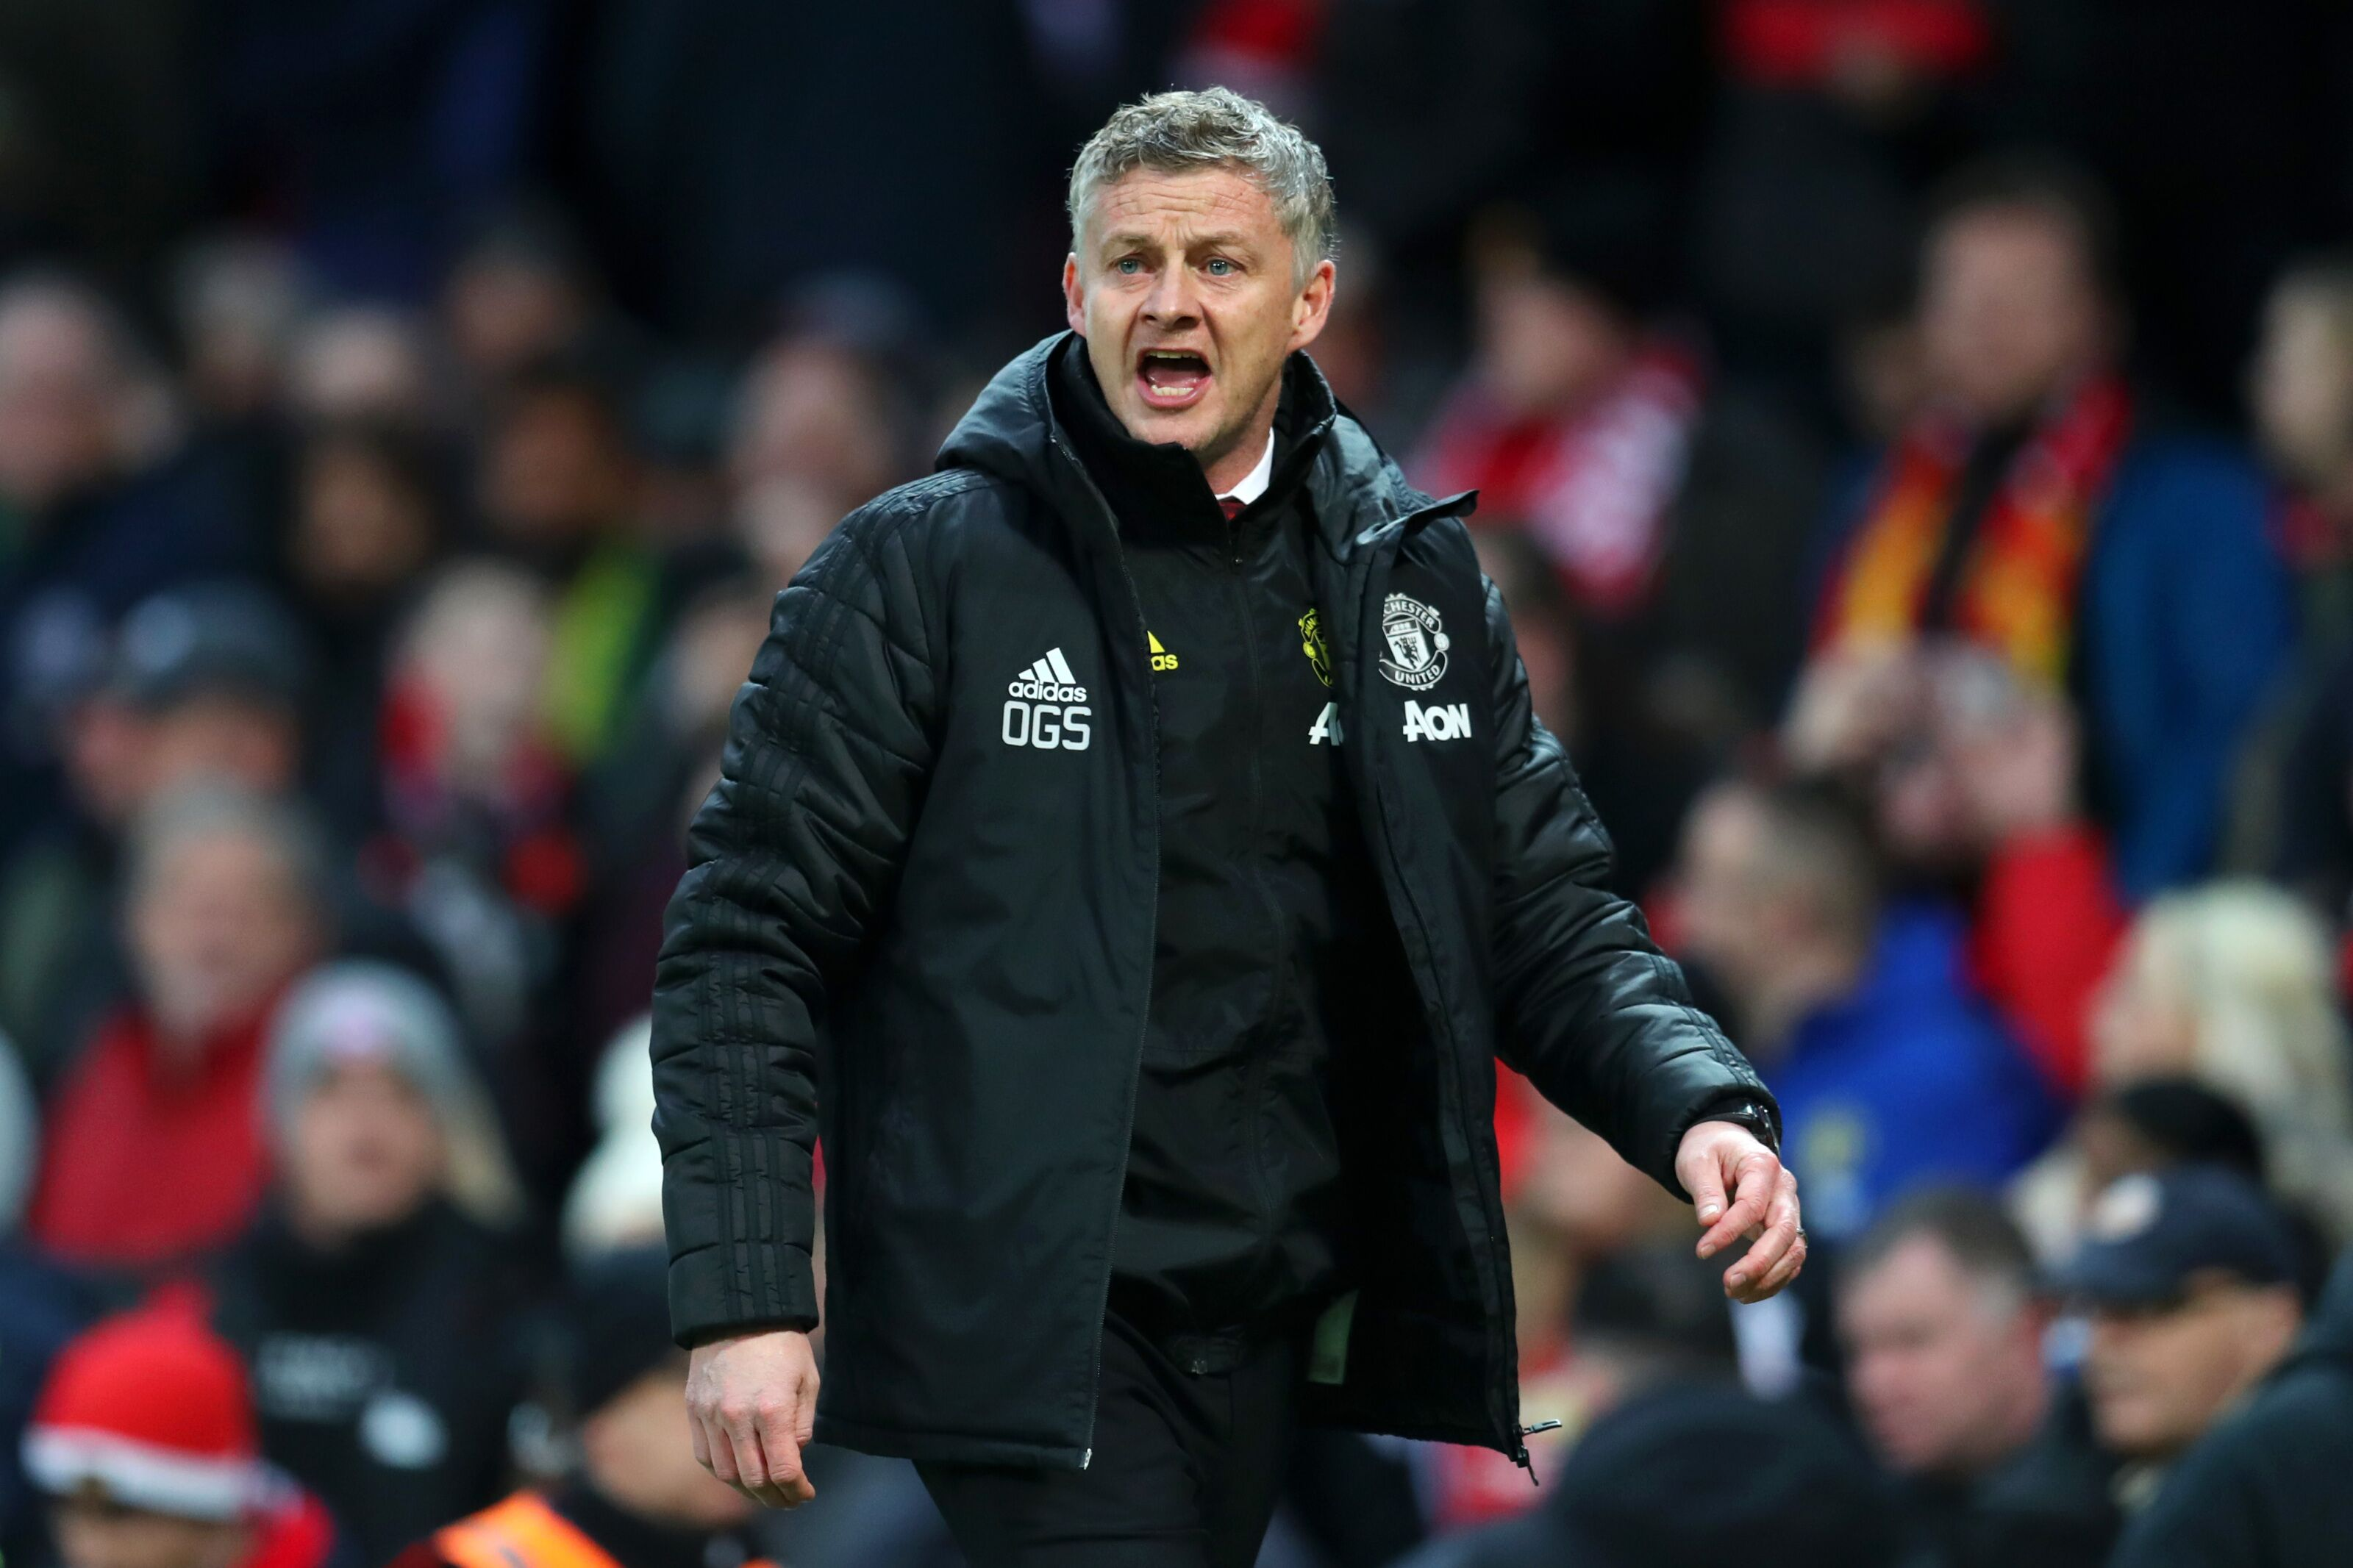 Manchester United: Solskjaer on the brink of signing another midfielder